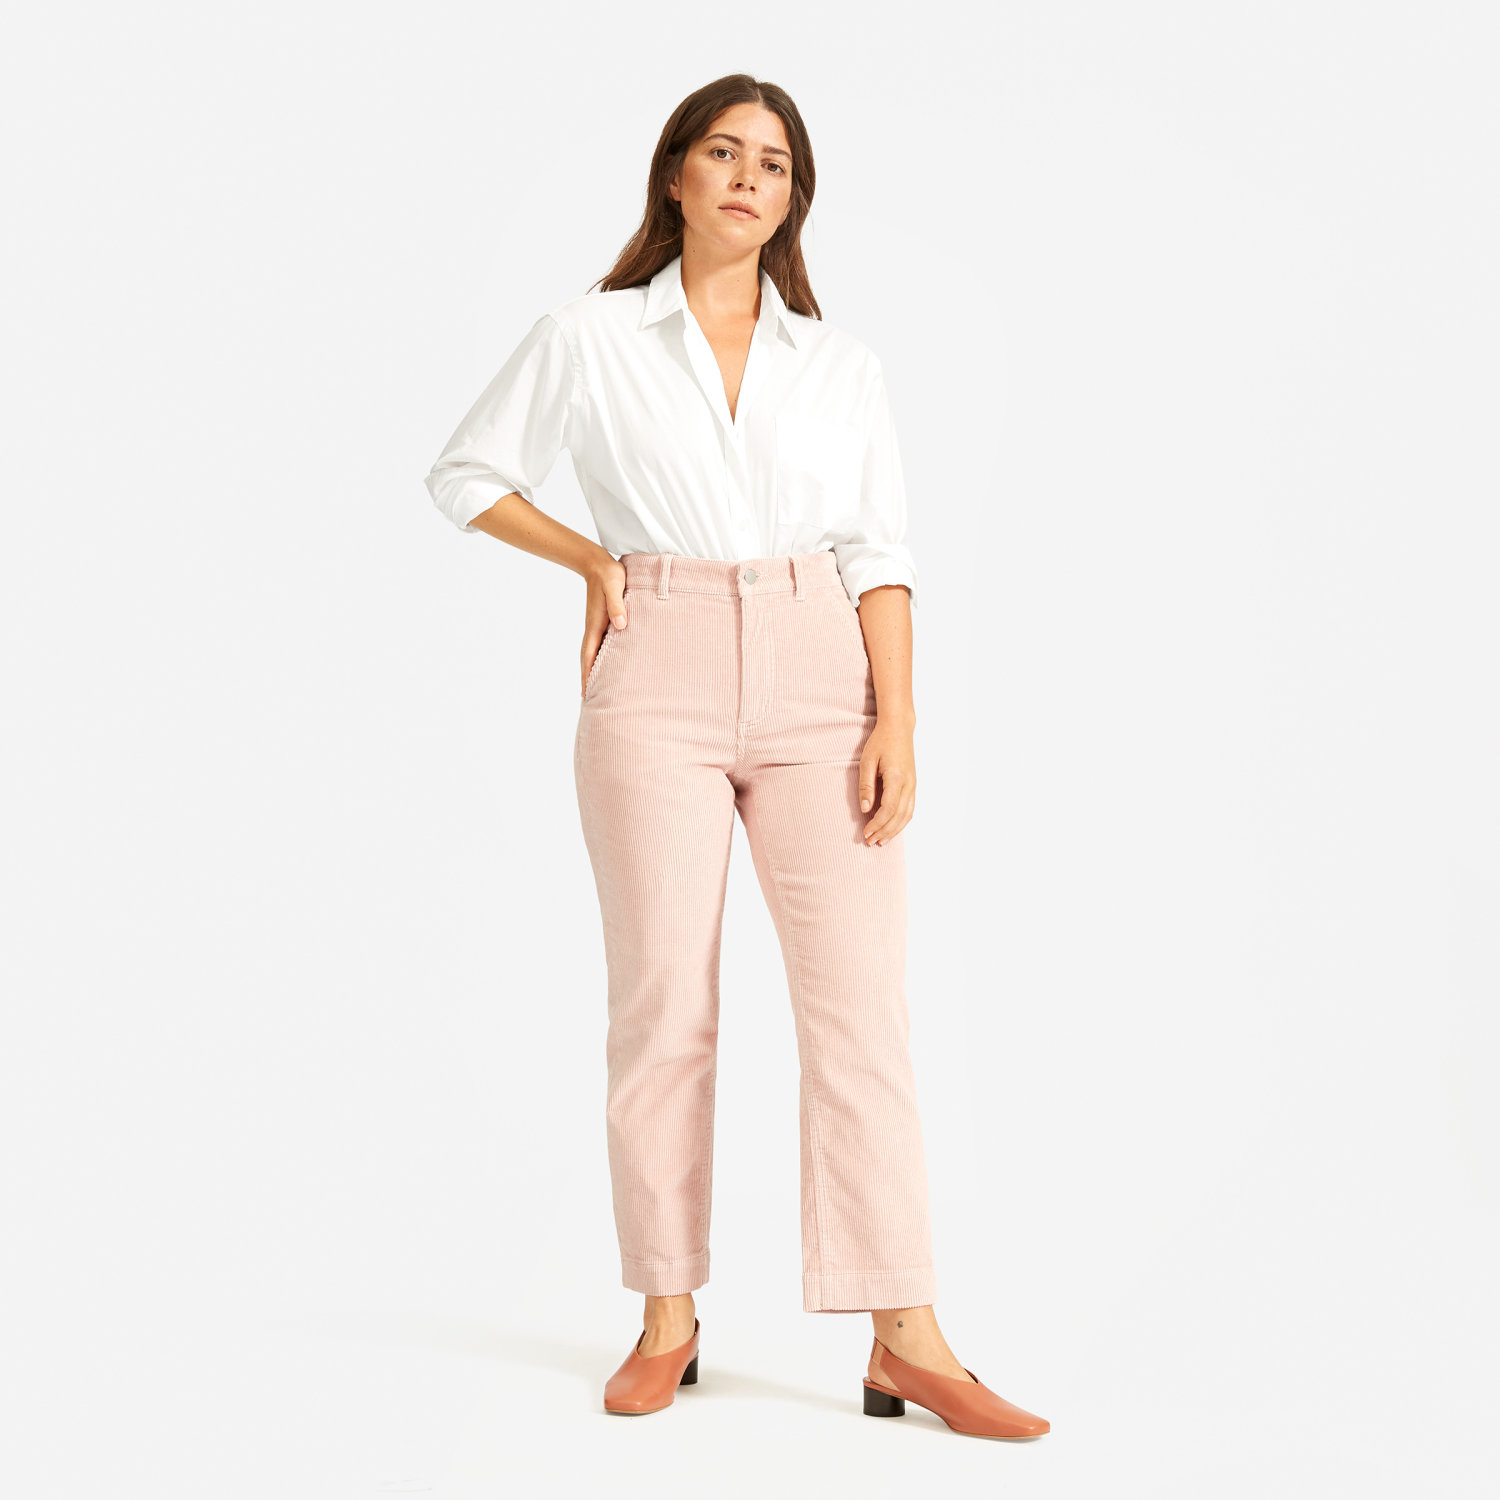 Everlane Corduroy Crop Pants / Fall Trends- Sunshine Style, A Florida Based Fashion Blog